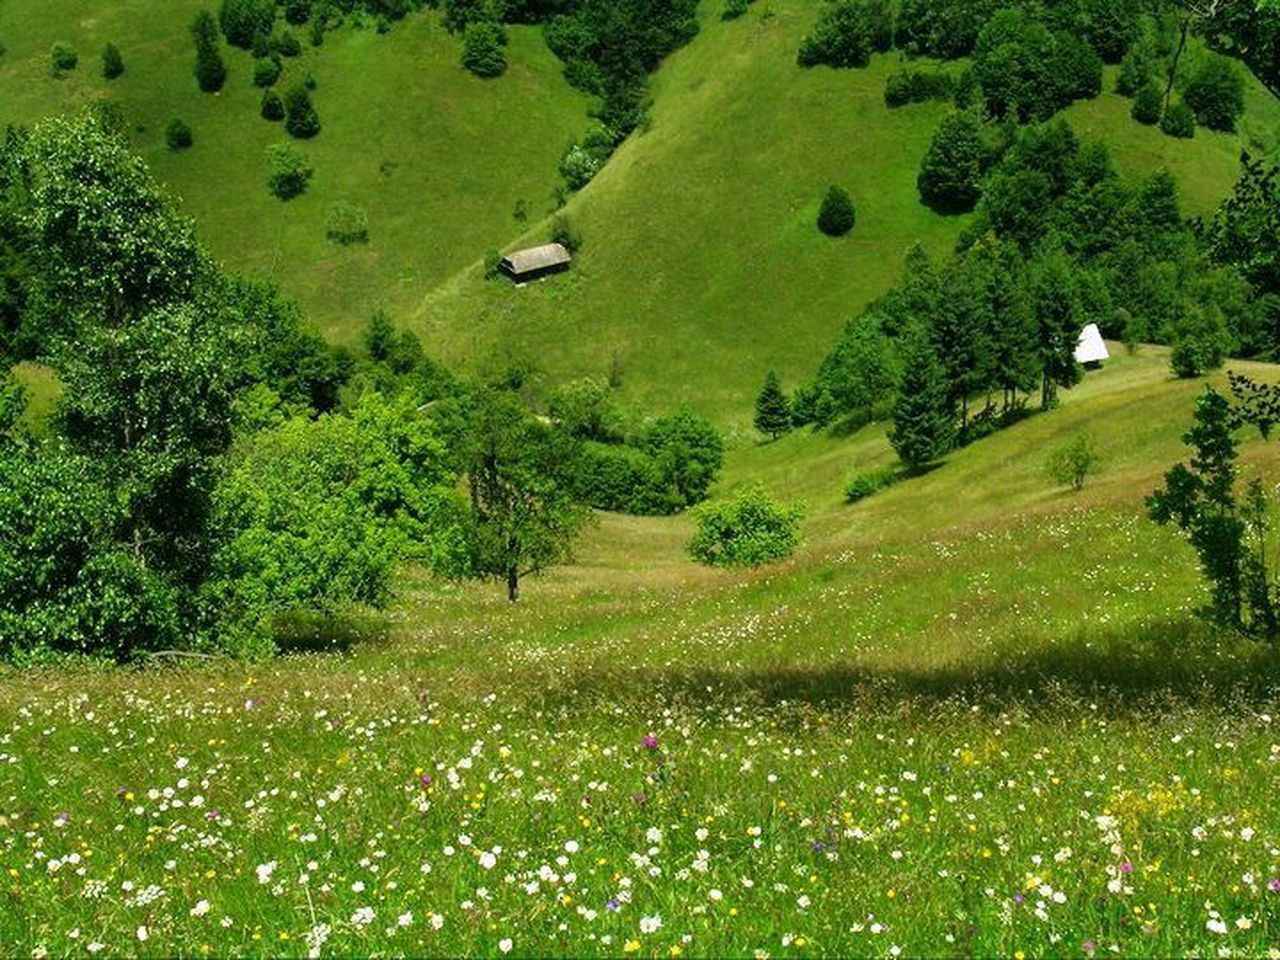 grass, field, nature, tree, green color, landscape, growth, no people, tranquil scene, scenics, tranquility, beauty in nature, outdoors, day